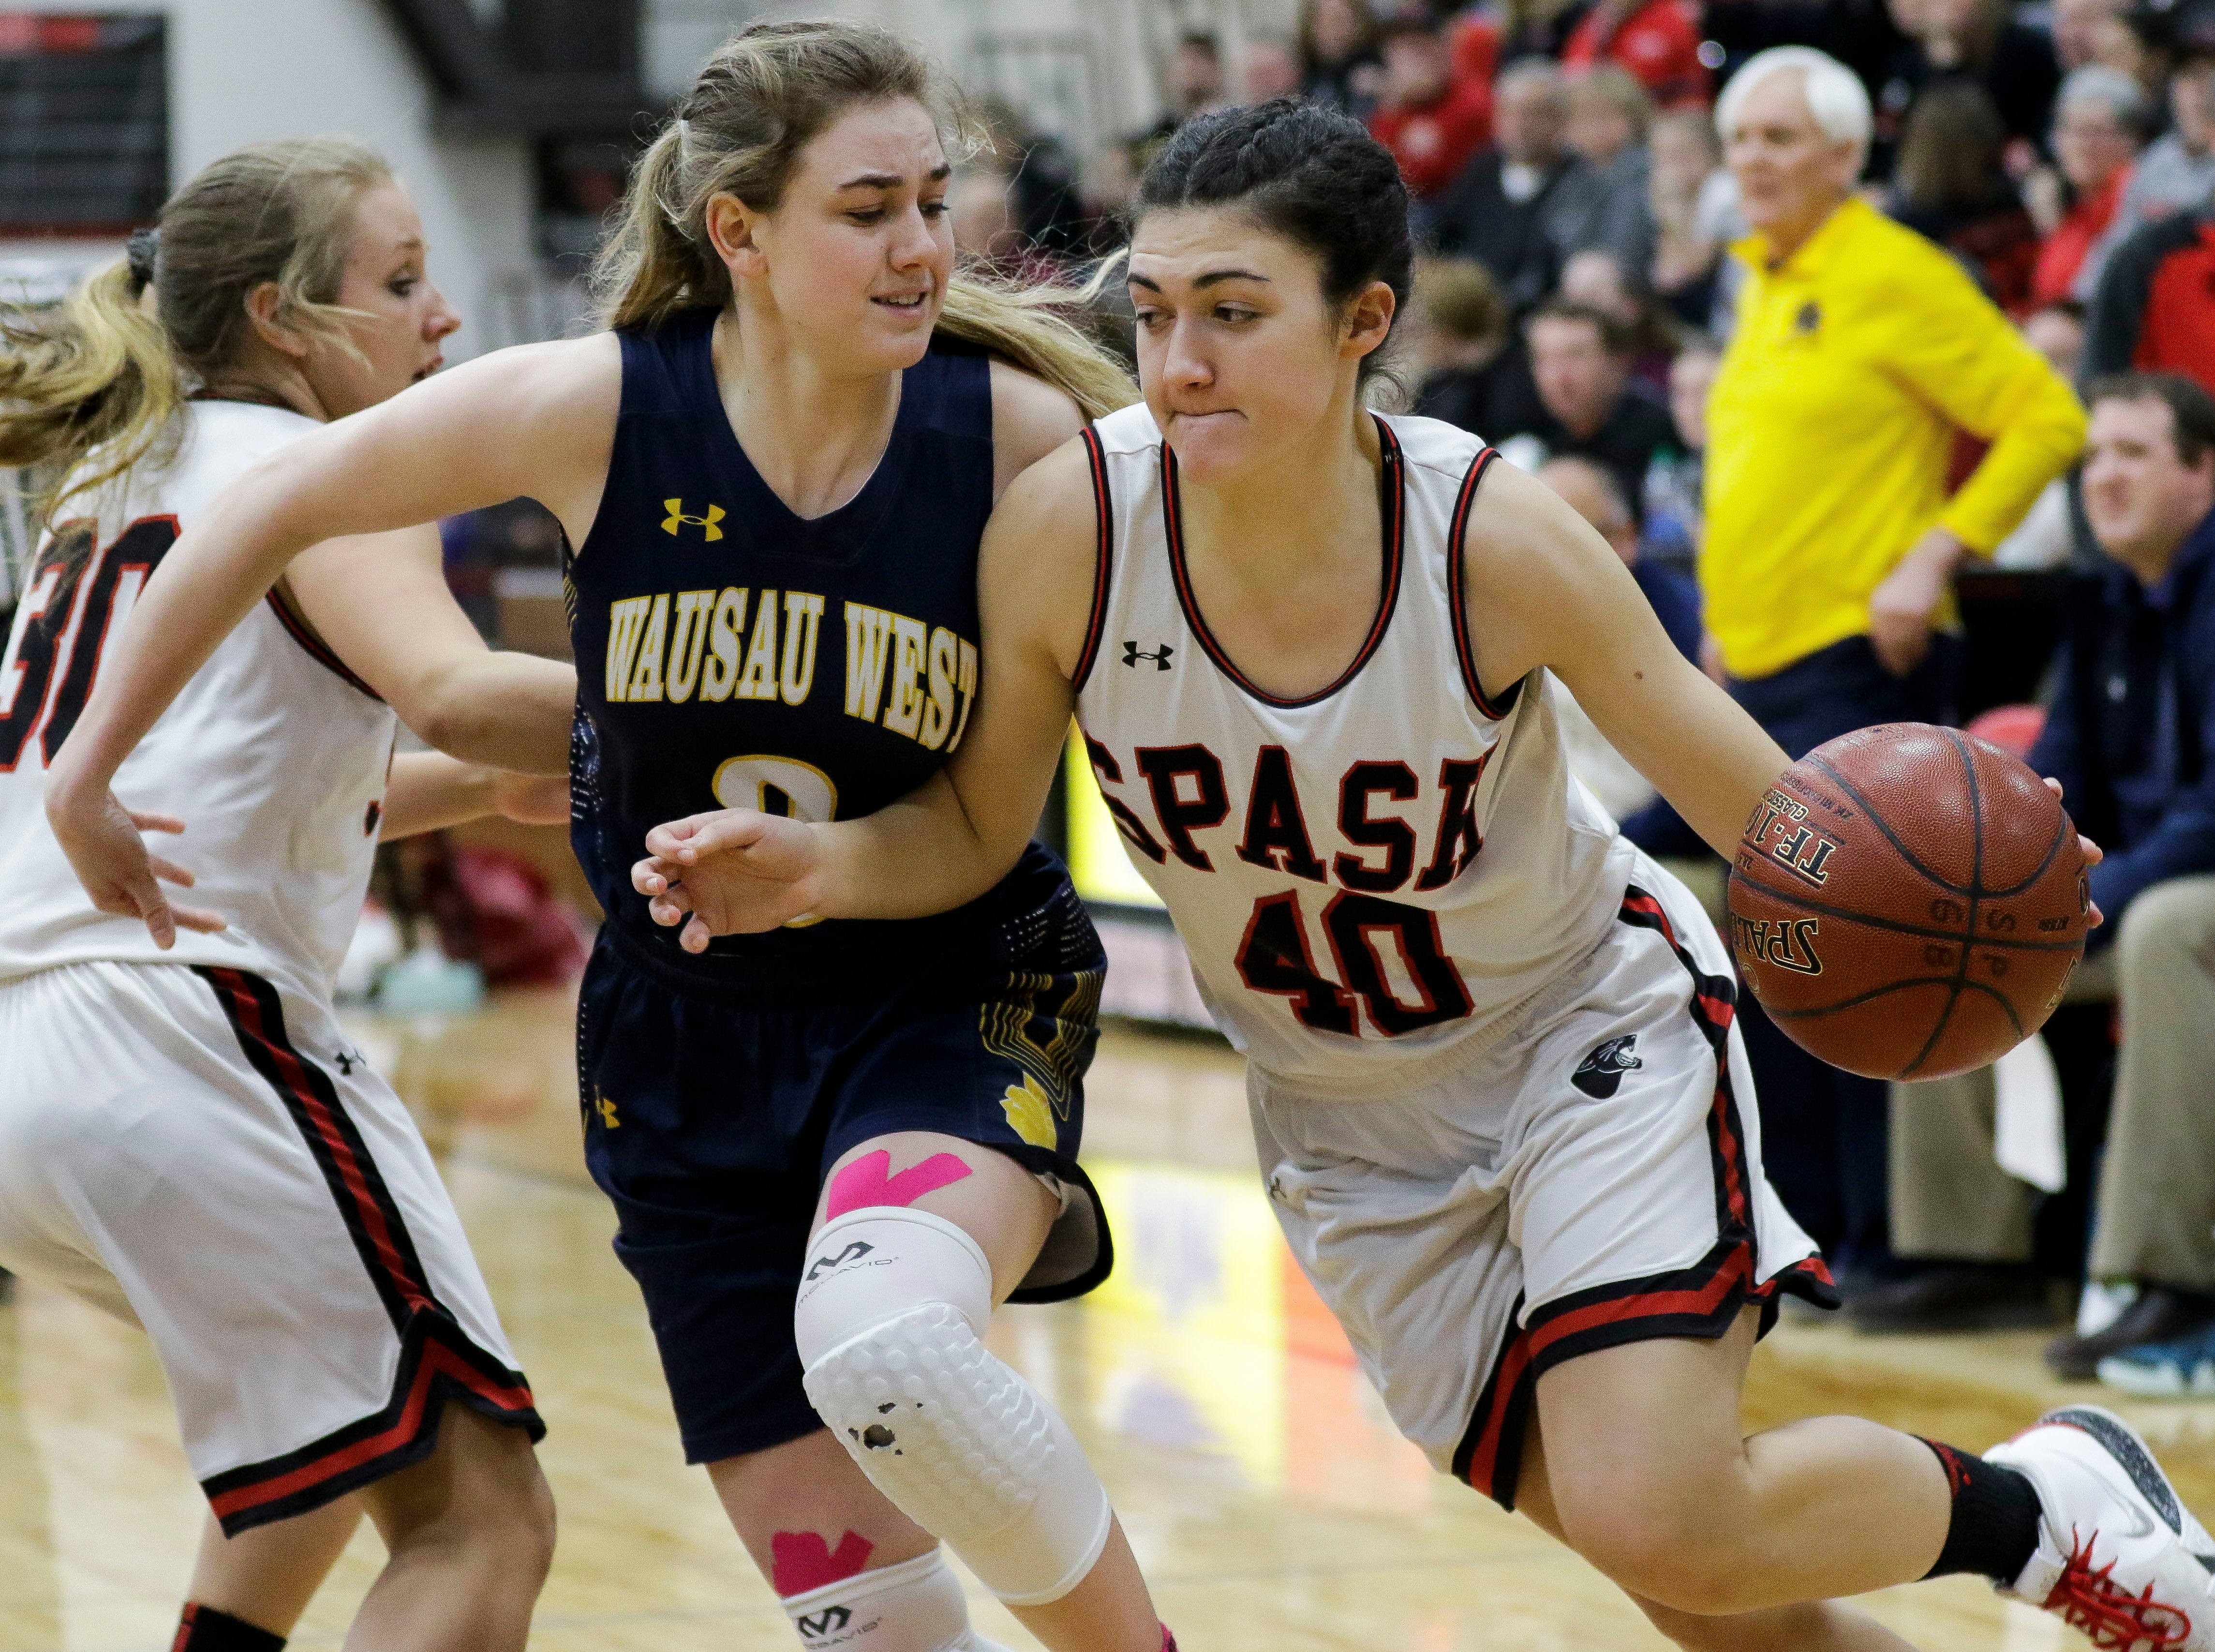 SPASH's Leah Earnest (40) drives the baseline against Wausau West's Kadie Deaton (3) on Thursday, February 14, 2019, at SPASH in Stevens Point, Wis.Tork Mason/USA TODAY NETWORK-Wisconsin